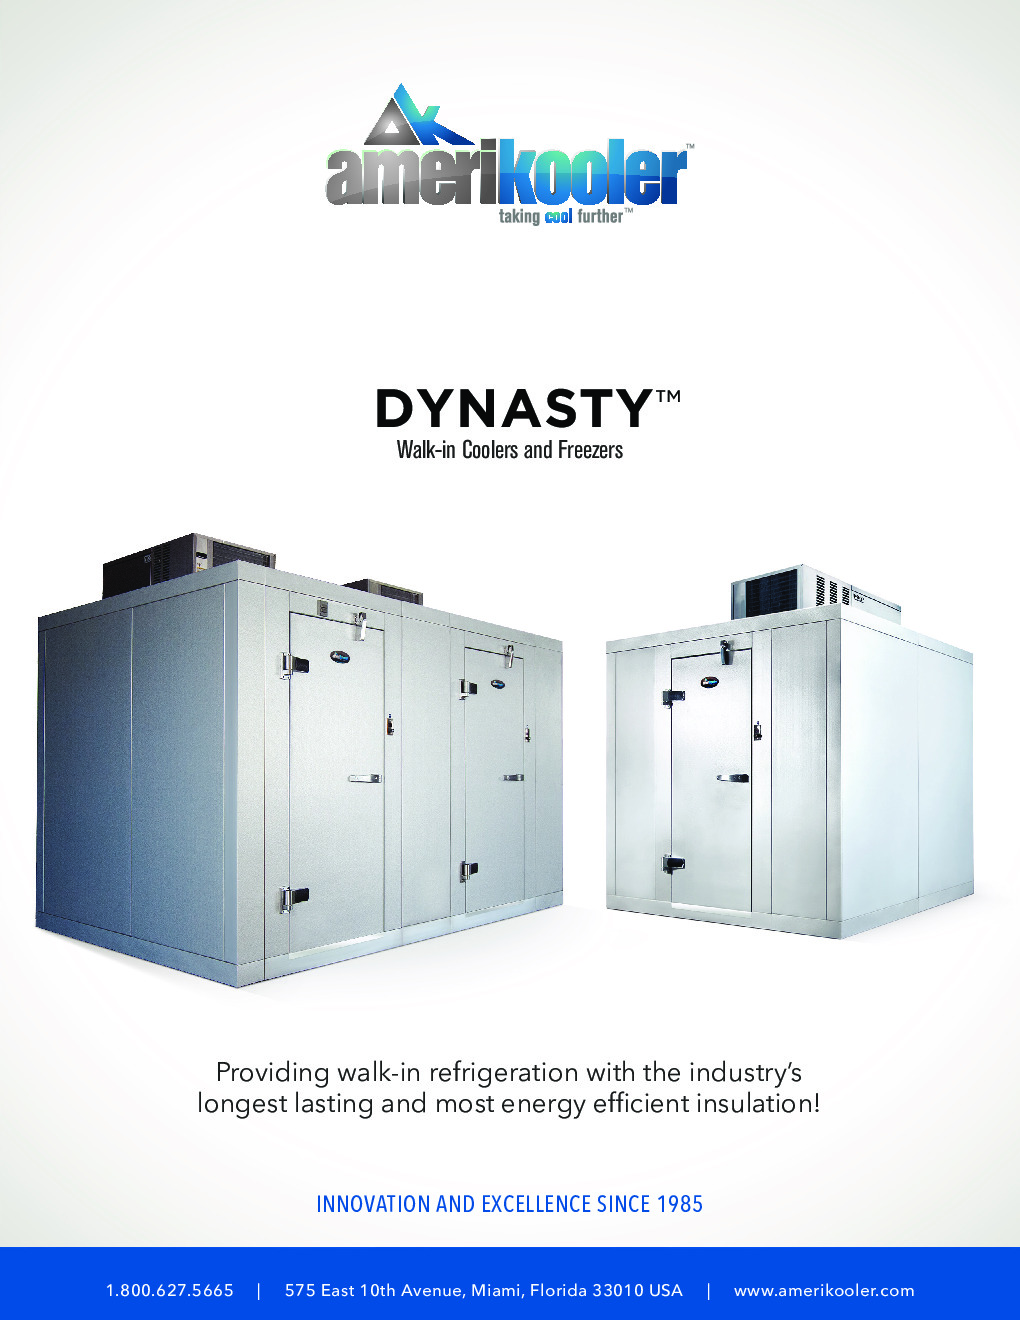 AmeriKooler DW101977F-8/11-SC 10' X 19' Walk-In Cooler, 11' L Cooler with Floor and 8' L Freezer, Self Contained